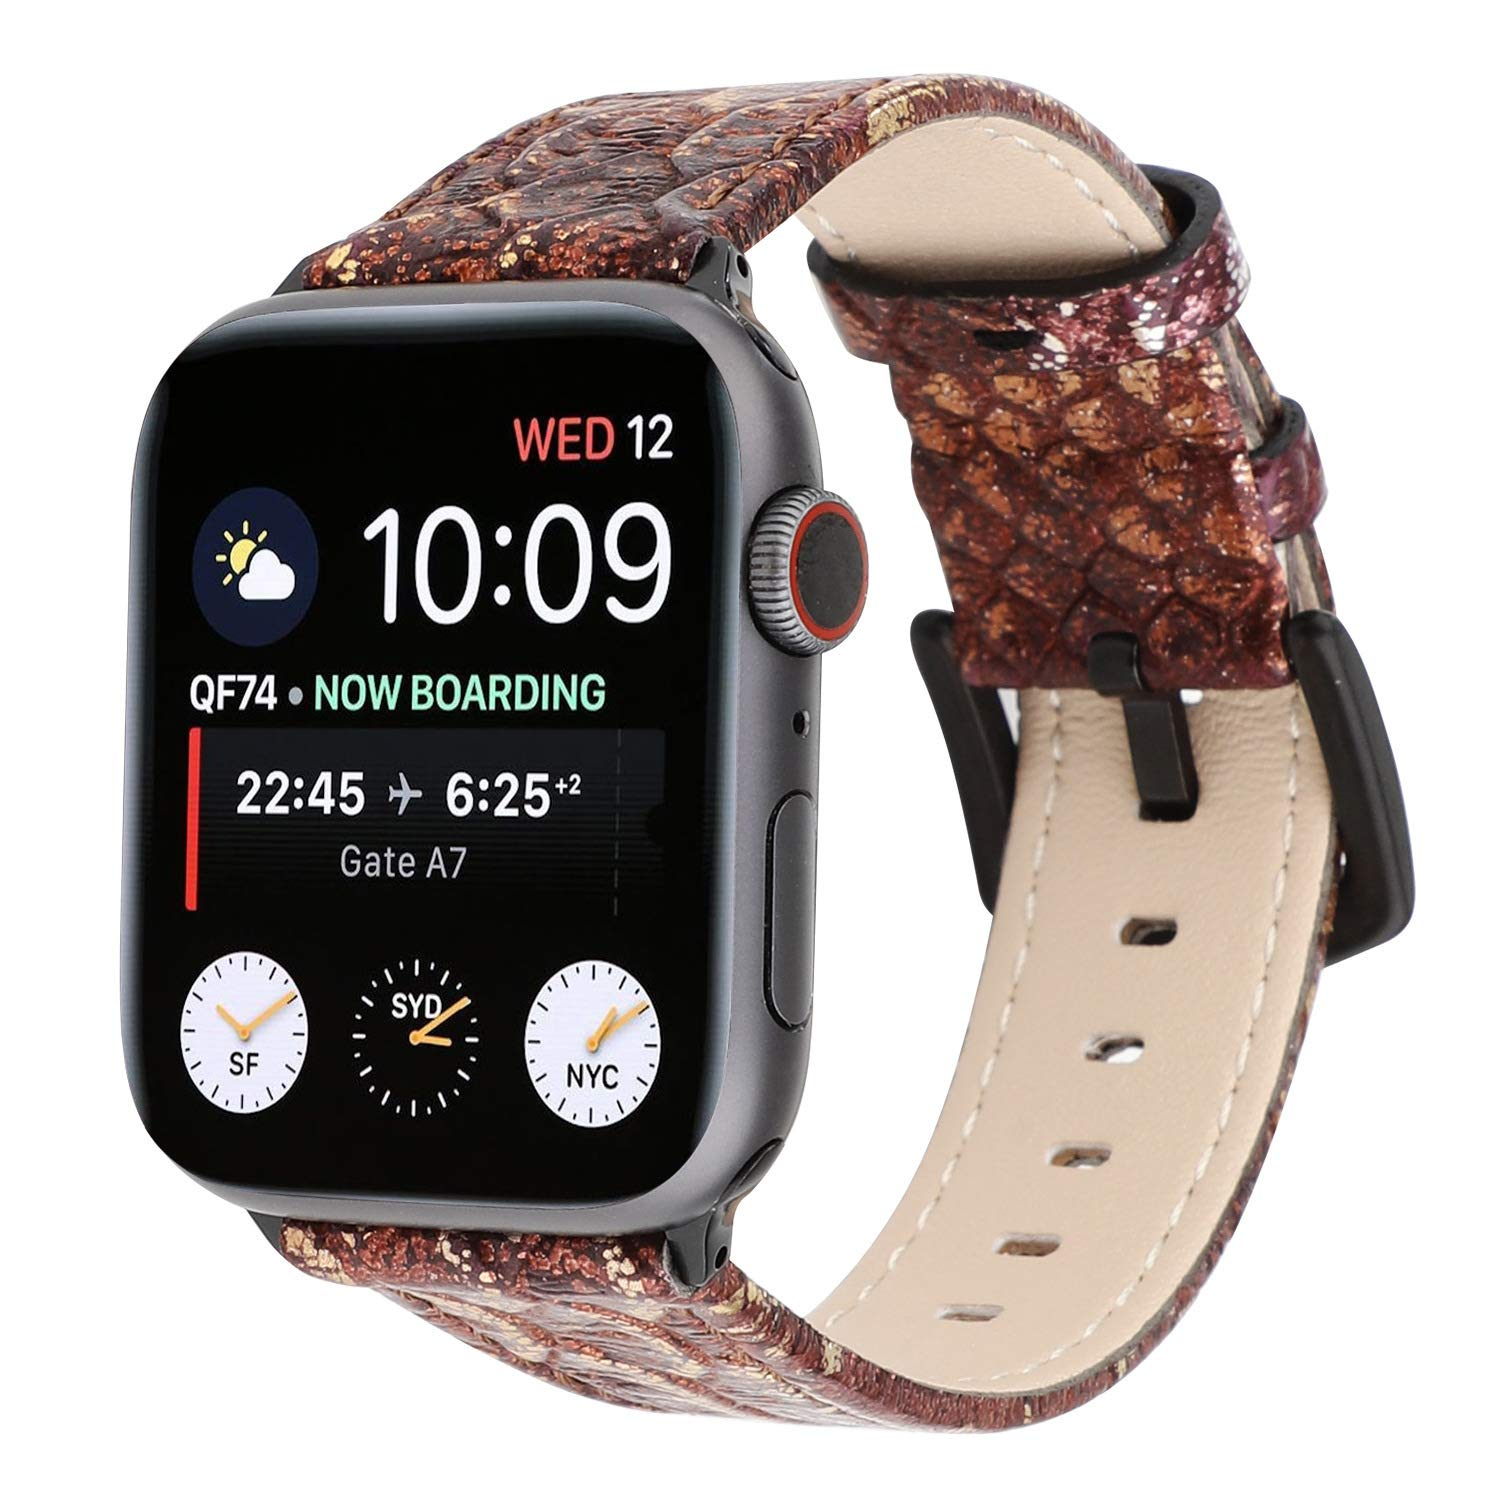 Watch Band 38mm 42mm 40mm 44mm Snake Skin Leather Watch Strap Replacement for iWatch Series 4 3 2 1 Nike+ by Kortusa